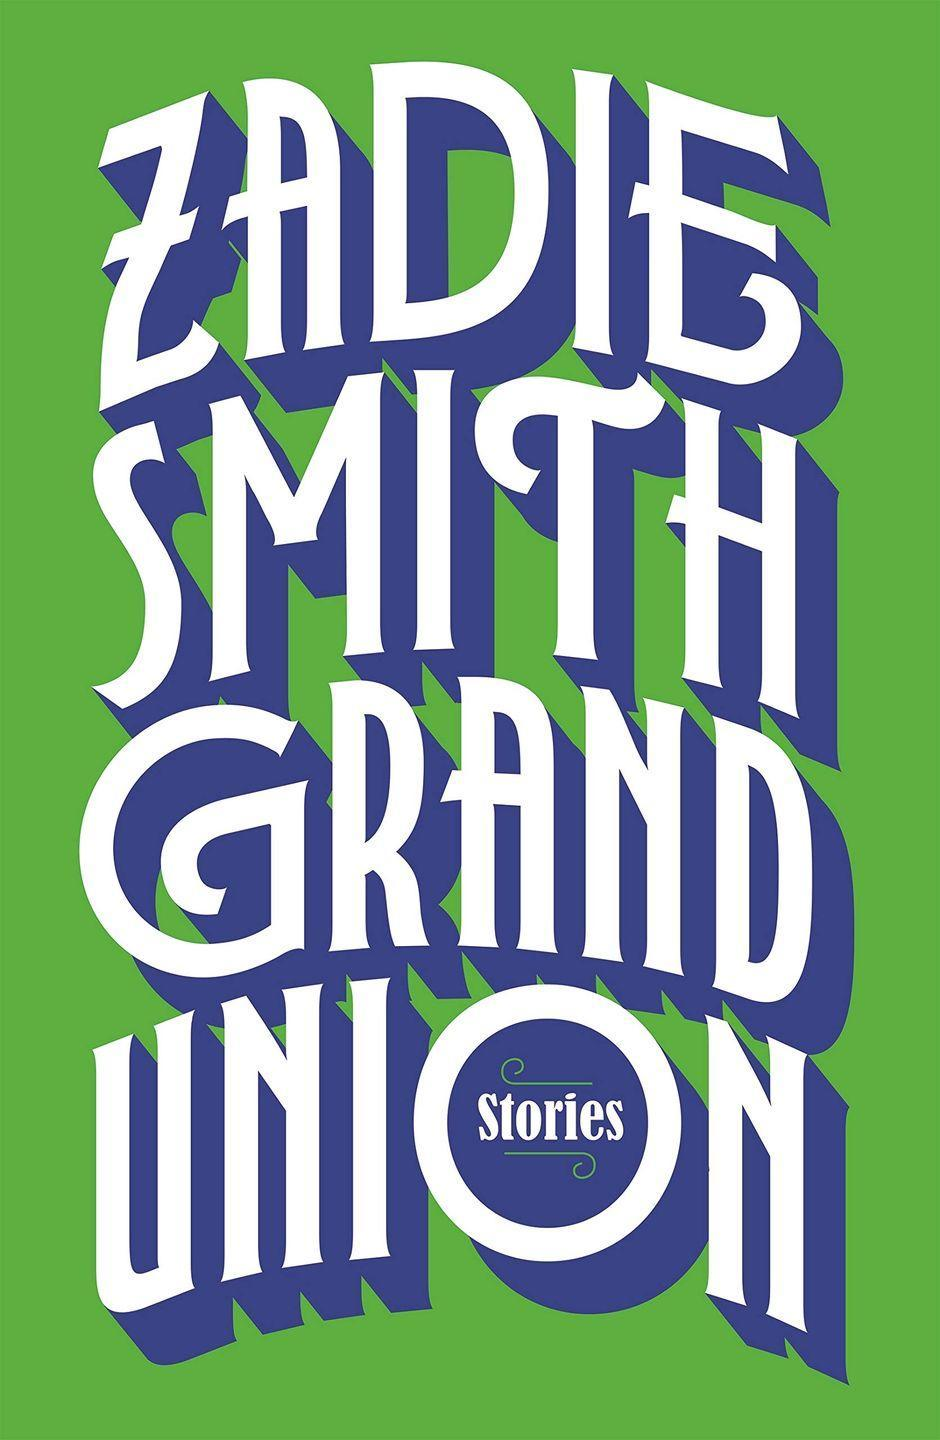 """<p>Having mastered the novel and essay formats, British literary stalwart Zadie Smith turned her pen to short stories in 2019. The 19 different tales in Grand Union are sprawling in their reach, touching on everything from single motherhood to the free speech debate in universities, objectifying men to the urban myth of Michael Jackson leaving New York with friends on the morning of 9/11, all told in Smith's commanding prose. </p><p><a class=""""link rapid-noclick-resp"""" href=""""https://www.amazon.co.uk/Grand-Union-Zadie-Smith/dp/024133702X?tag=hearstuk-yahoo-21&ascsubtag=%5Bartid%7C1923.g.15840493%5Bsrc%7Cyahoo-uk"""" rel=""""nofollow noopener"""" target=""""_blank"""" data-ylk=""""slk:SHOP"""">SHOP</a></p>"""